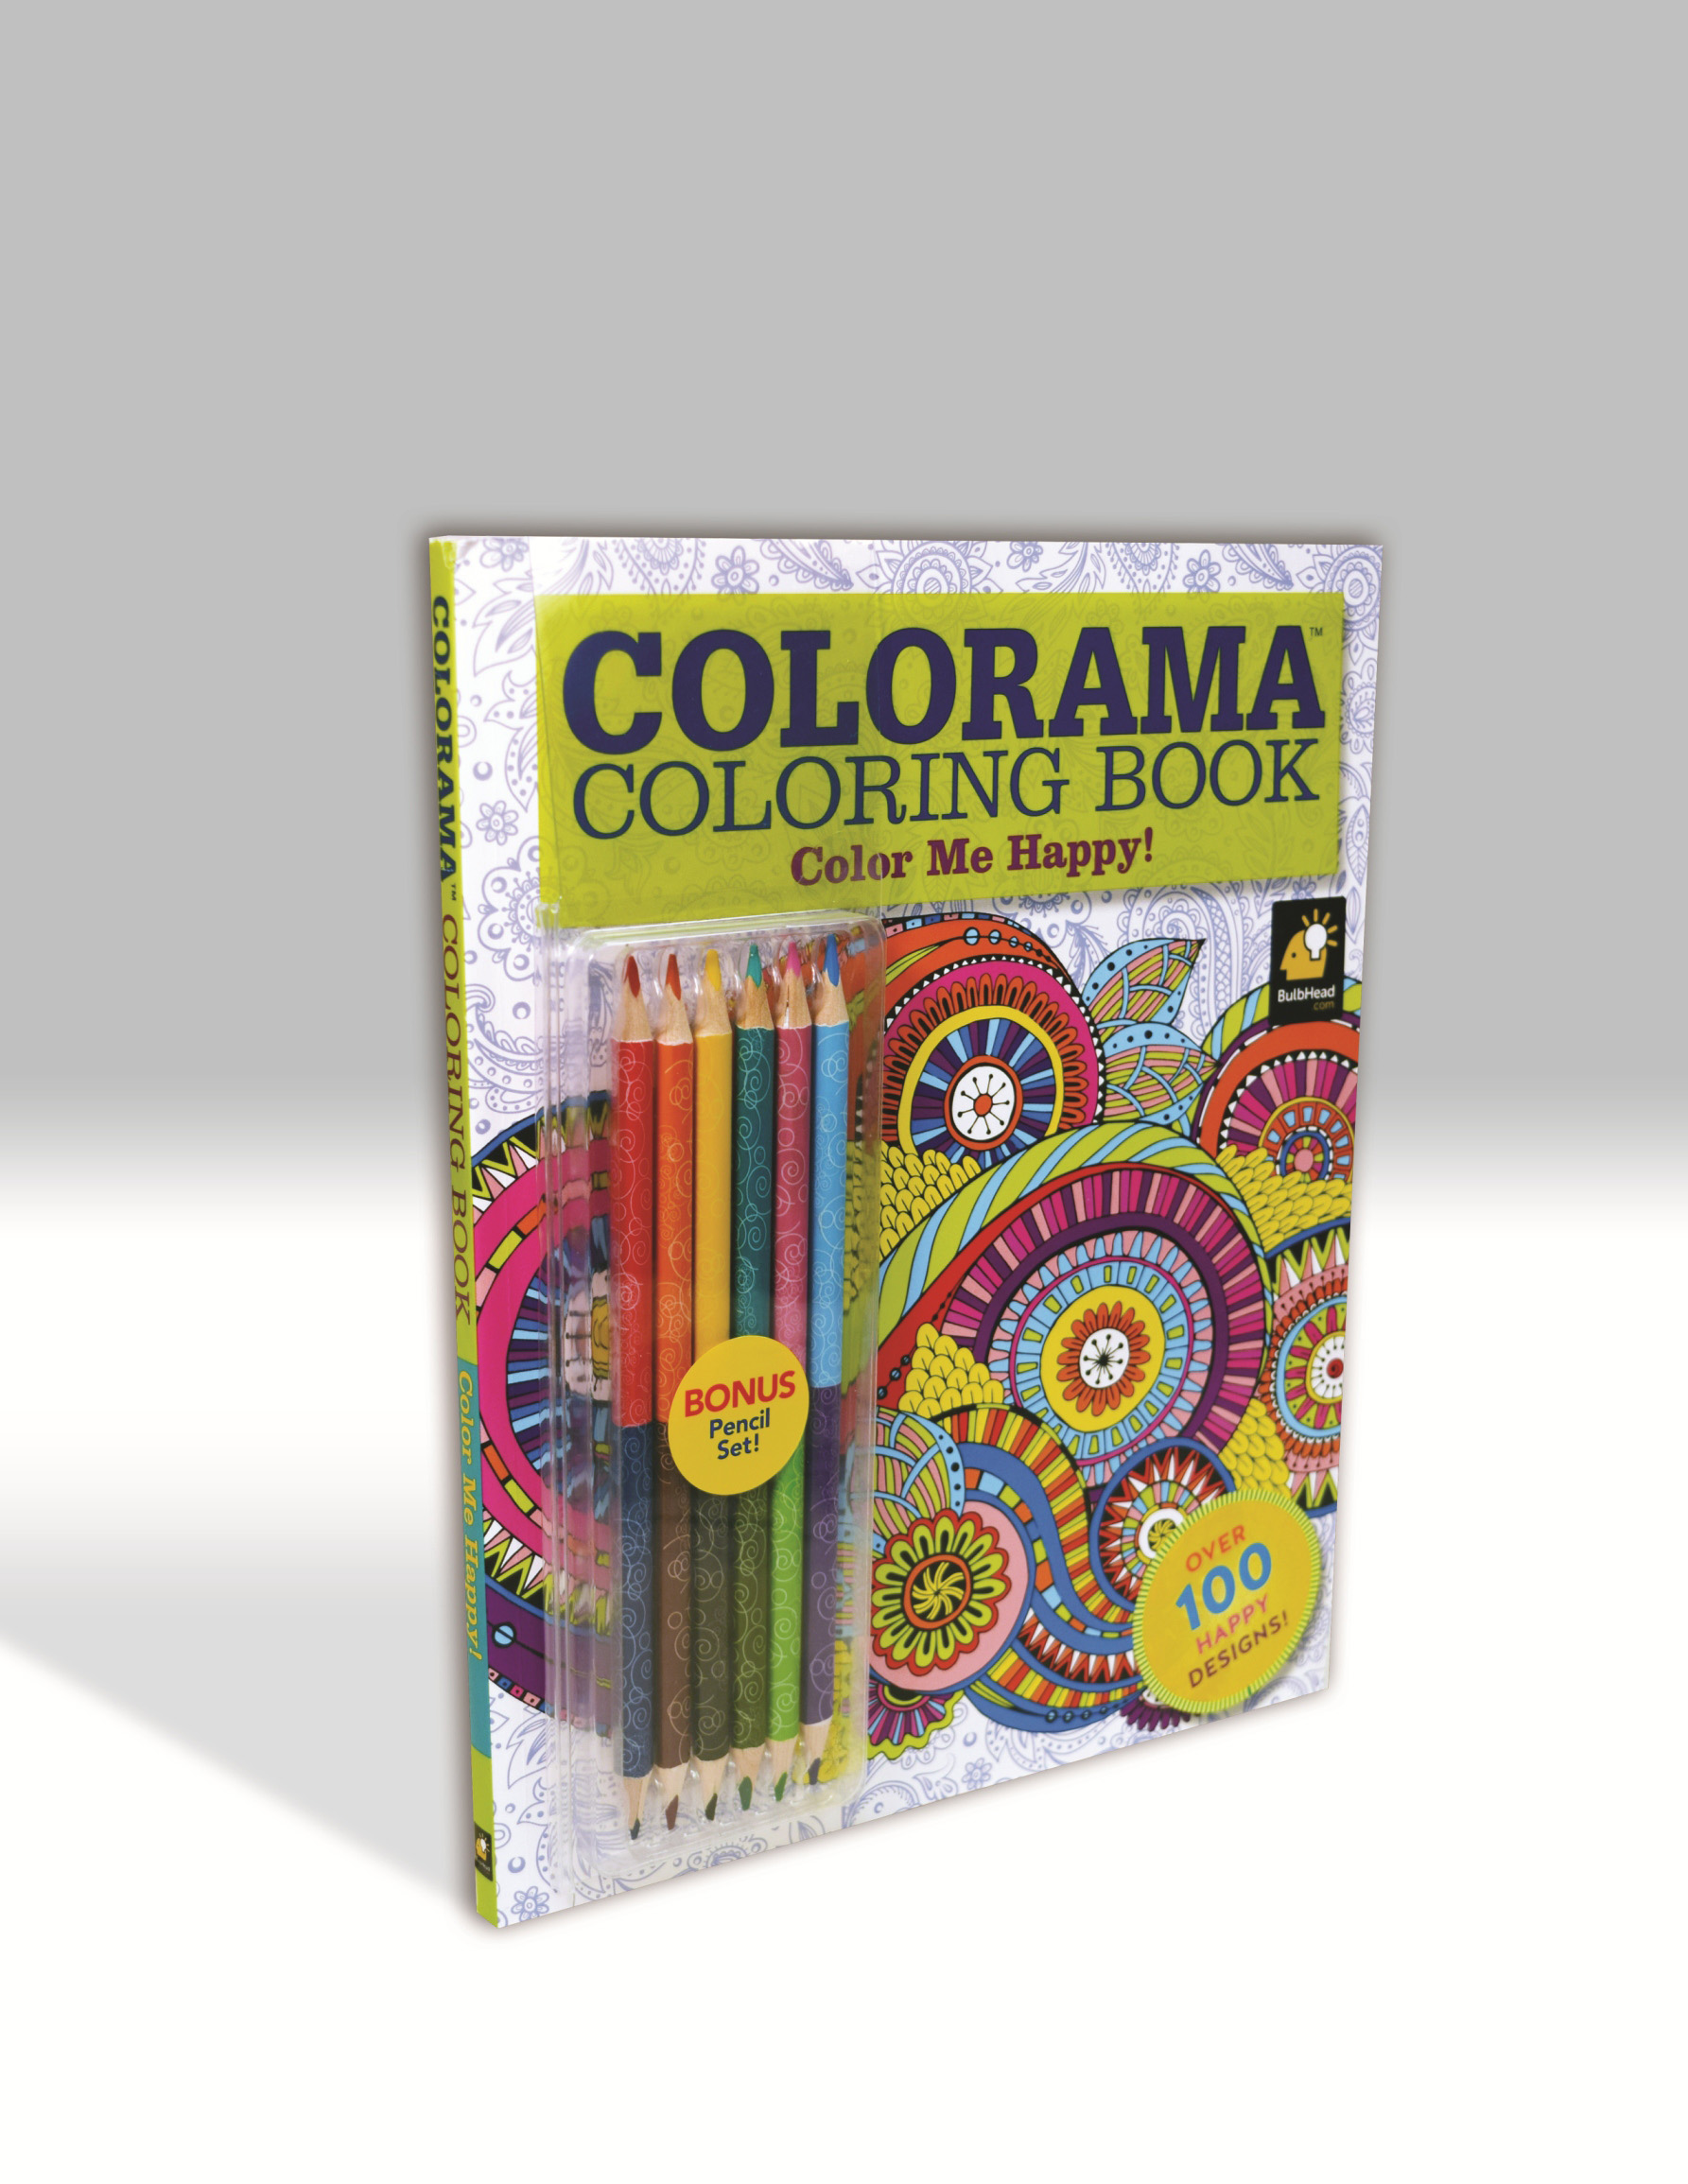 ISBN 9780990963592 Product Image For Colorama Color Me Happy Adult Coloring Book